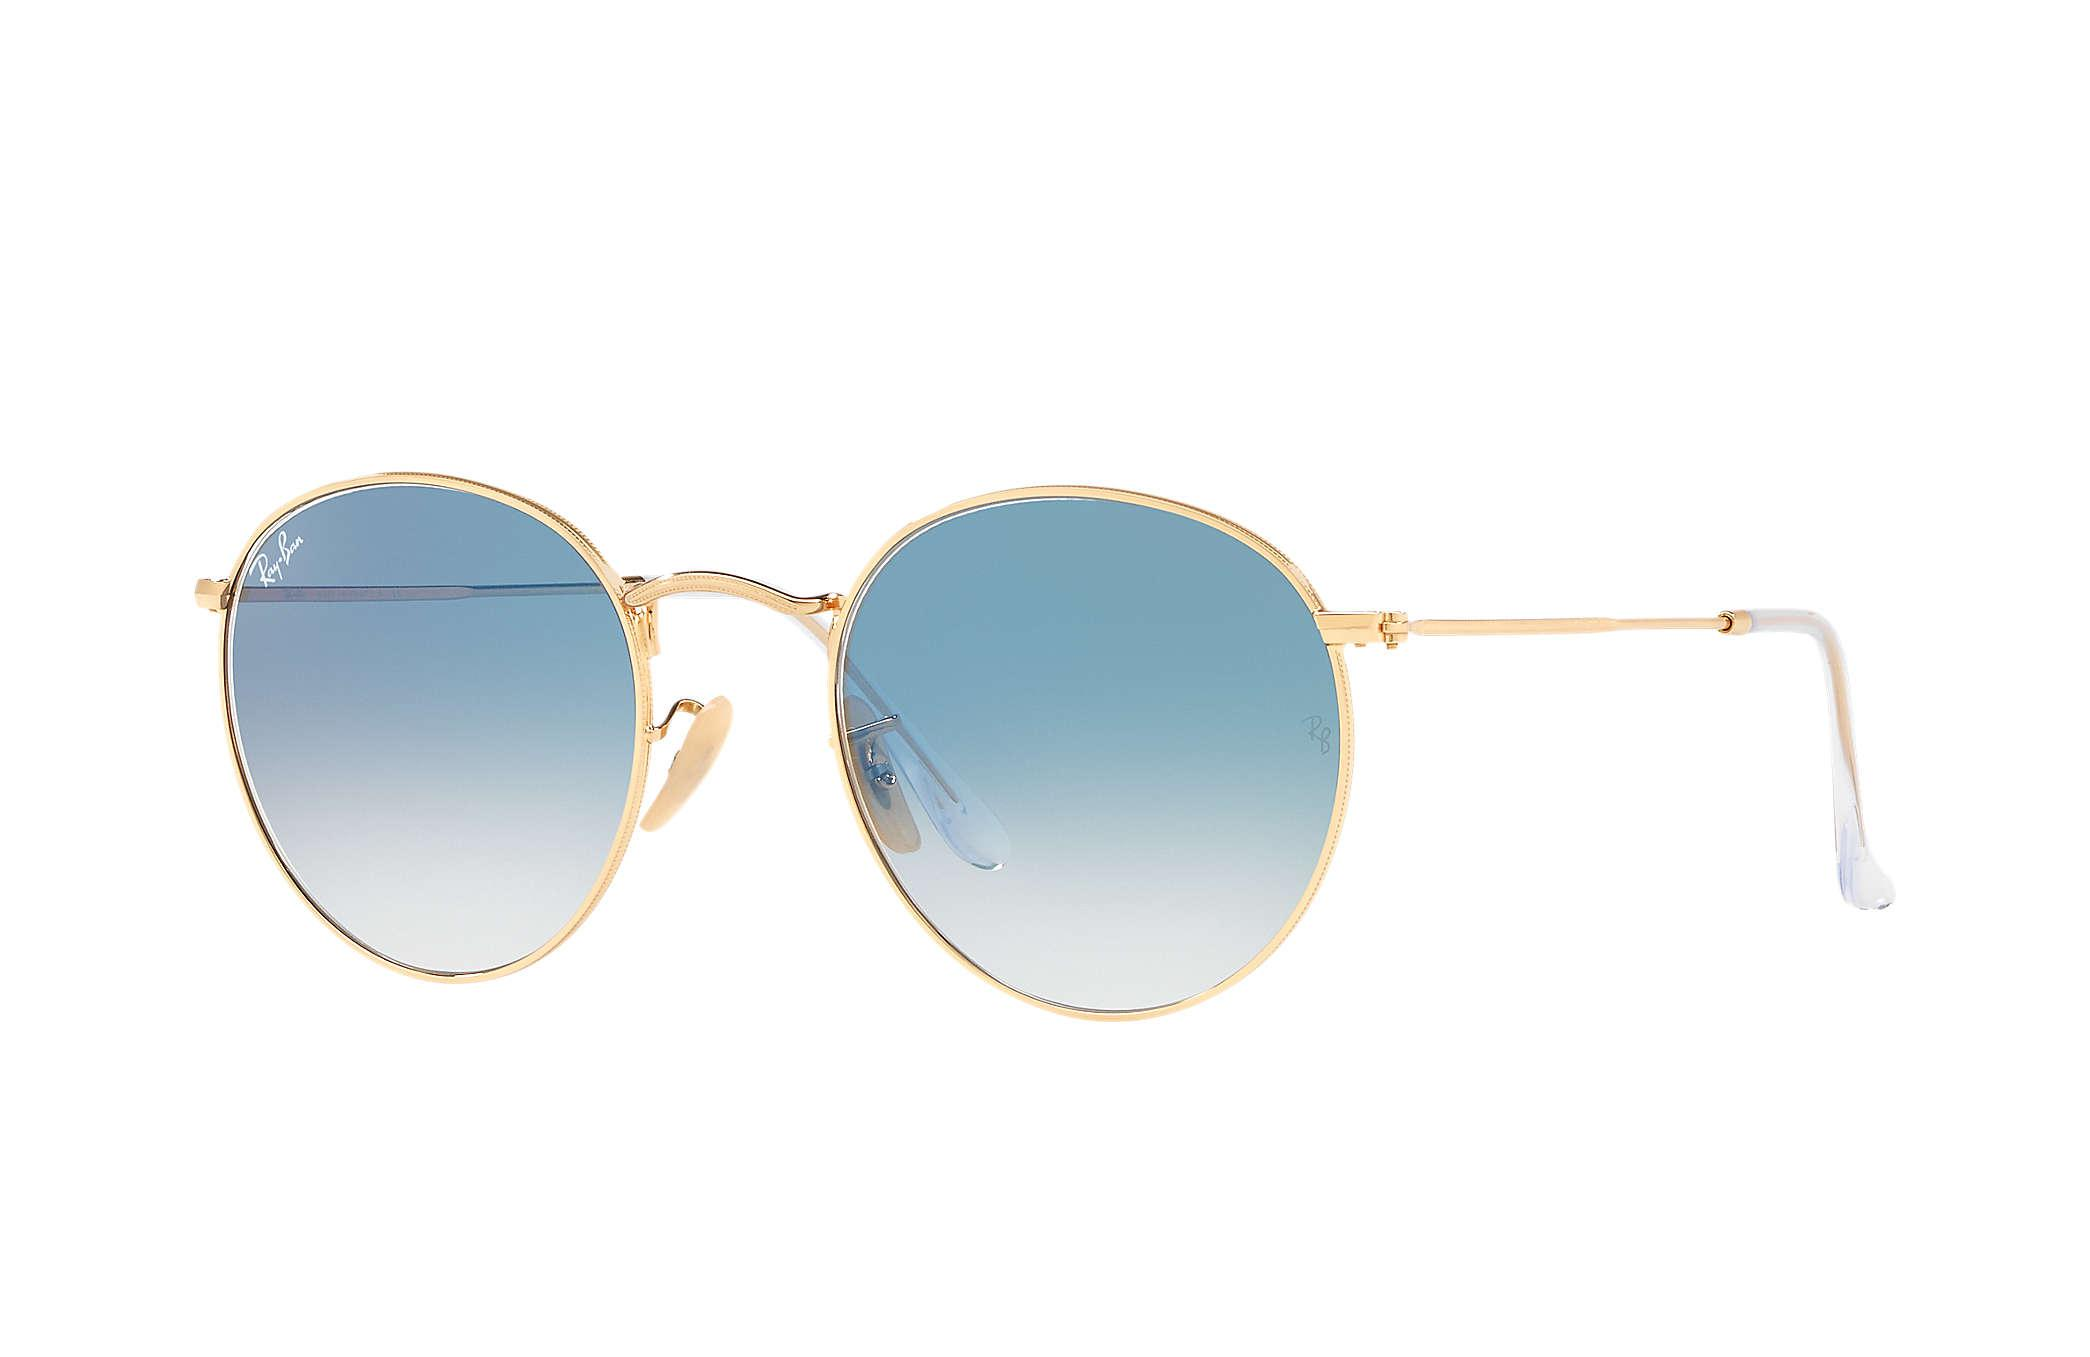 8c74b494c2 Ray-Ban Round Flat Lenses in Blue - Lyst